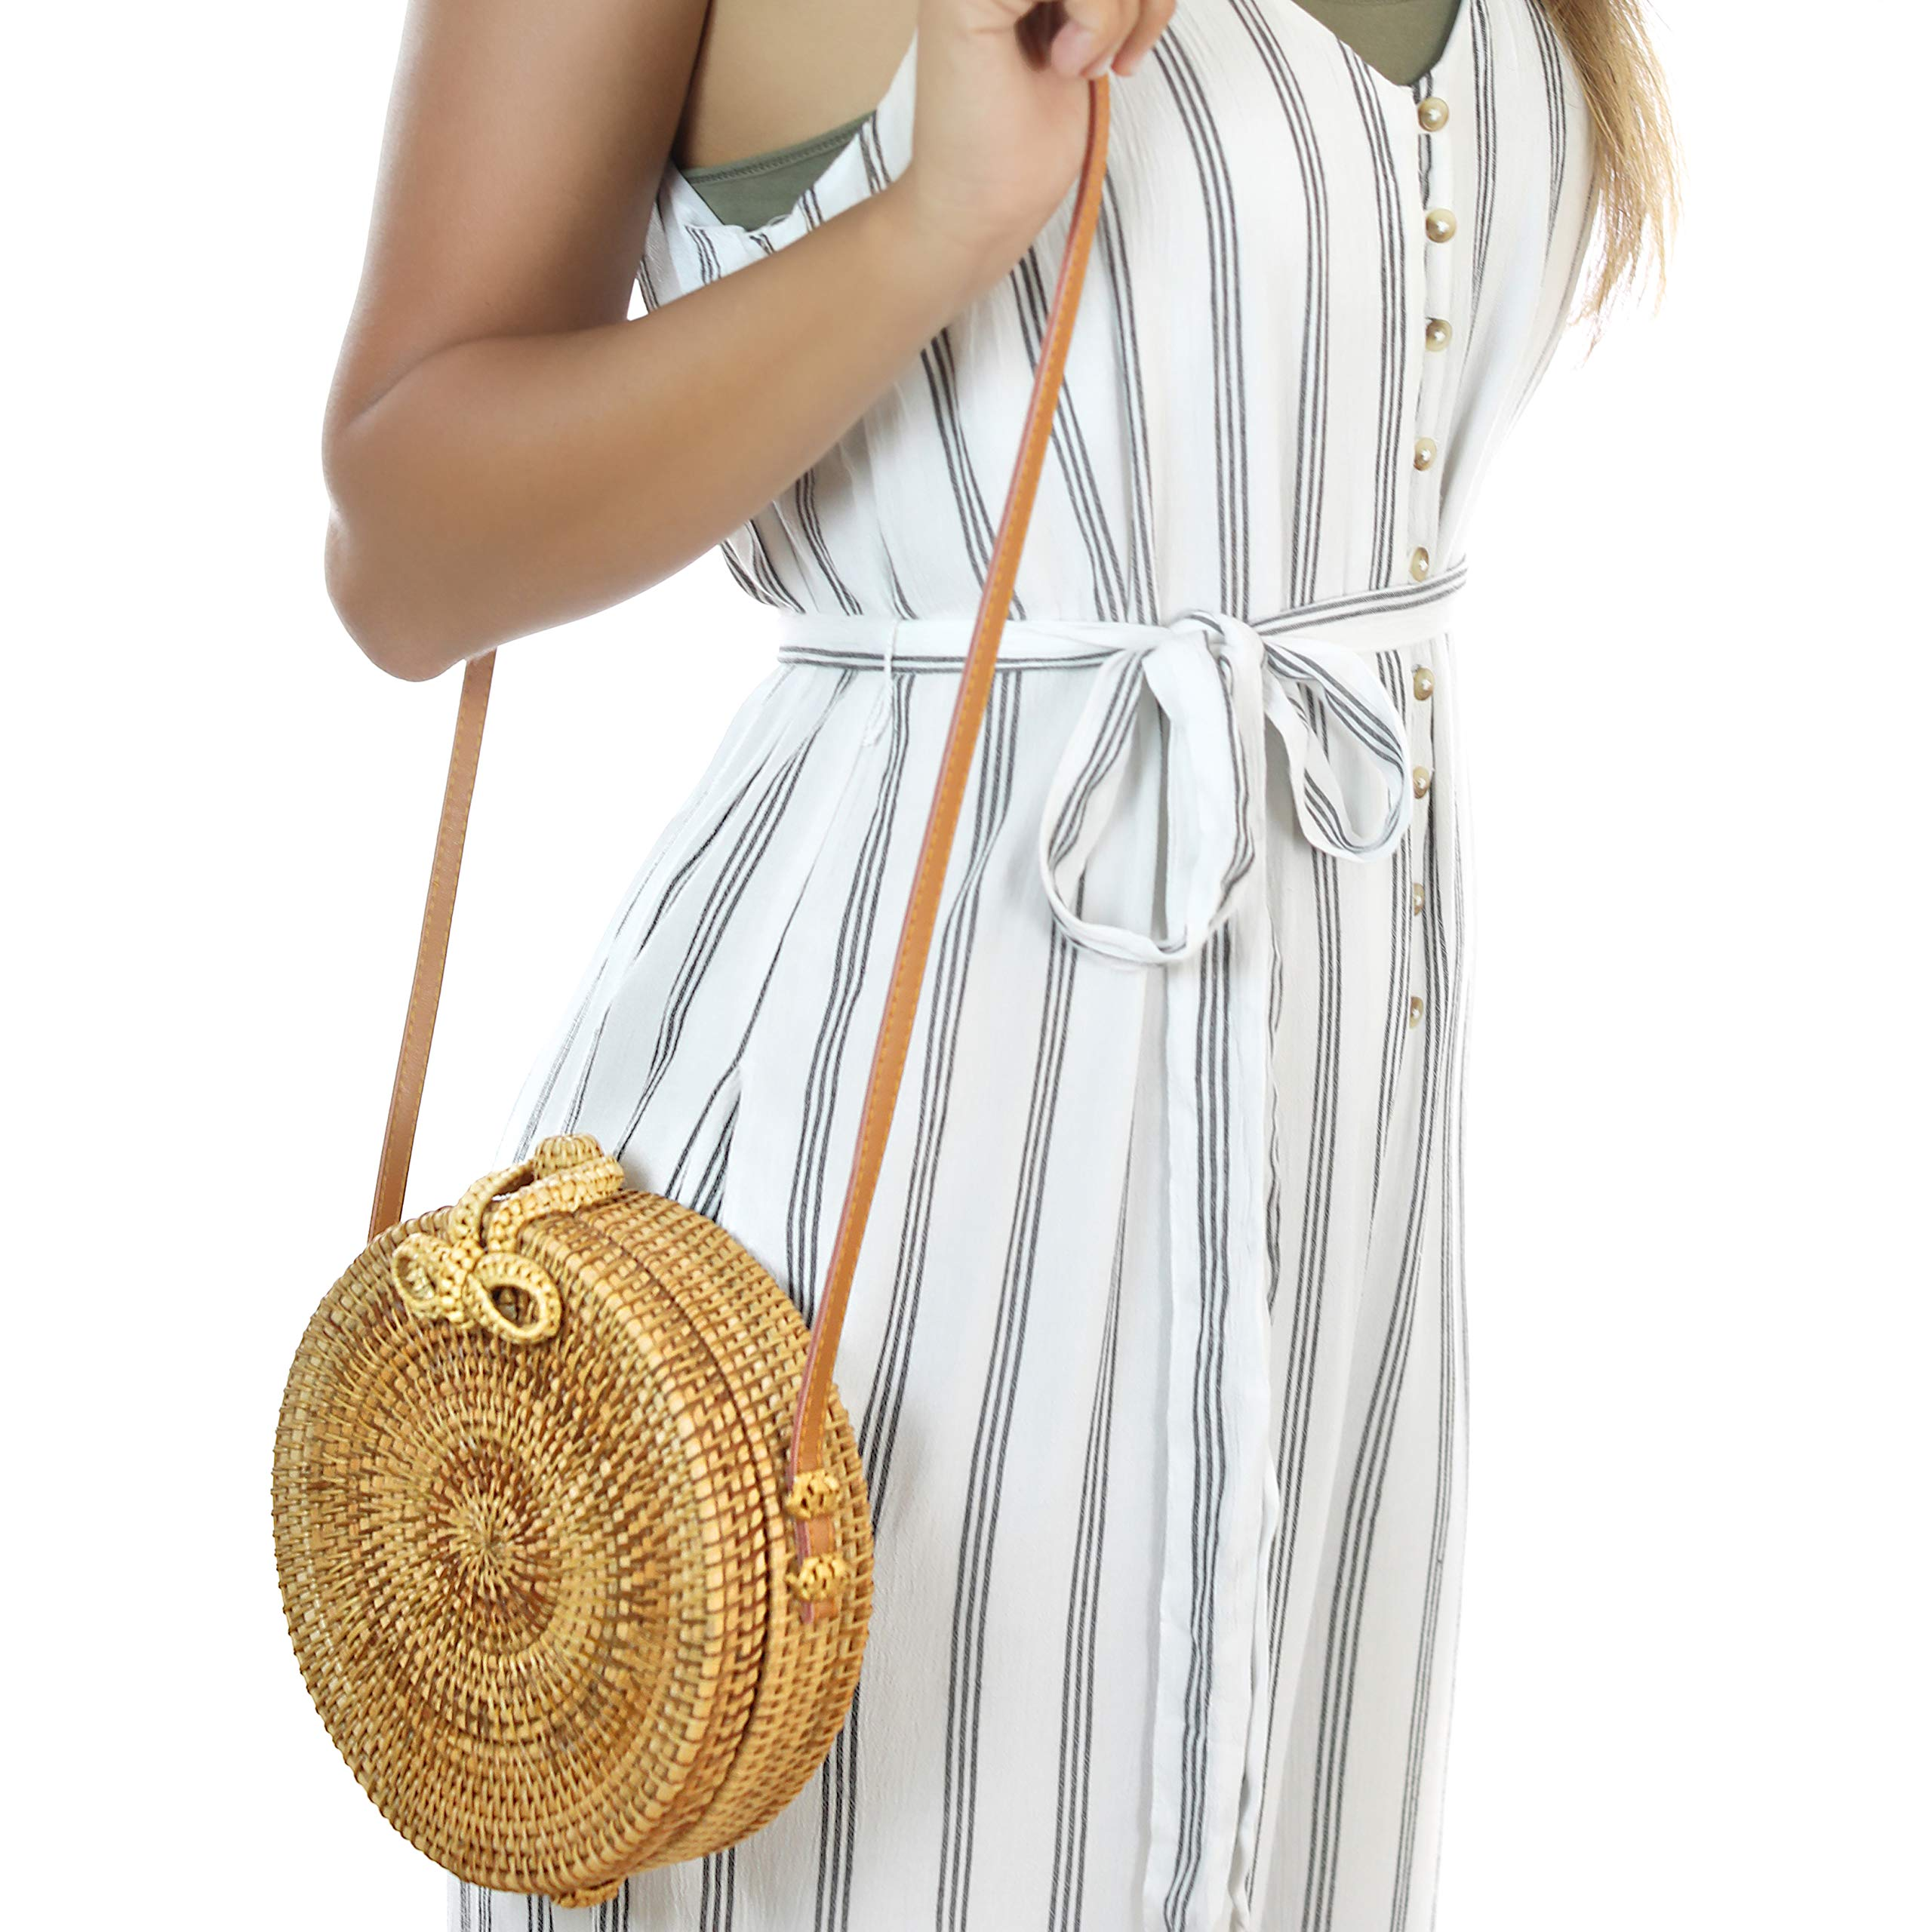 RATTAN NATURALS Handwoven Round Rattan Crossbody Bag| DELUXE EDITION | Round Straw Bag for Women | Genuine 100% Leather Shoulder straps | Straw purse For Women | Boho bag | Straw Handbag for Women by Rattan Naturals (Image #6)